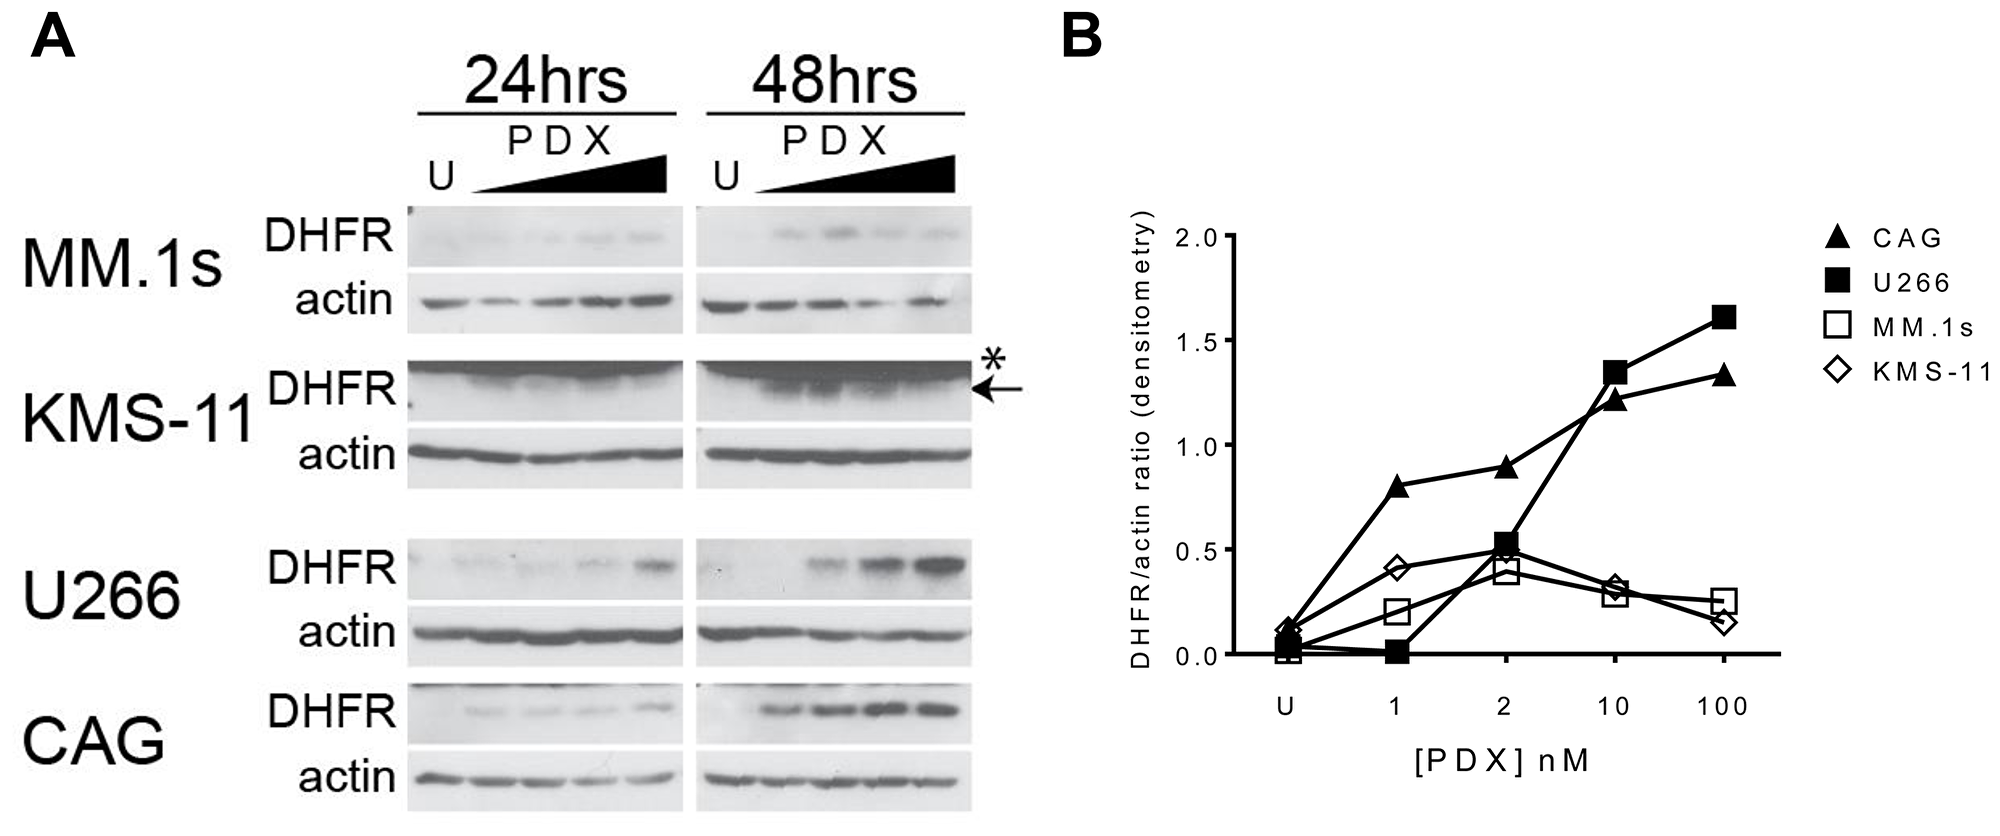 Antifolate-resistance in HMCLs correlates to the magnitude of DHFR protein upregulation in response to PDX.